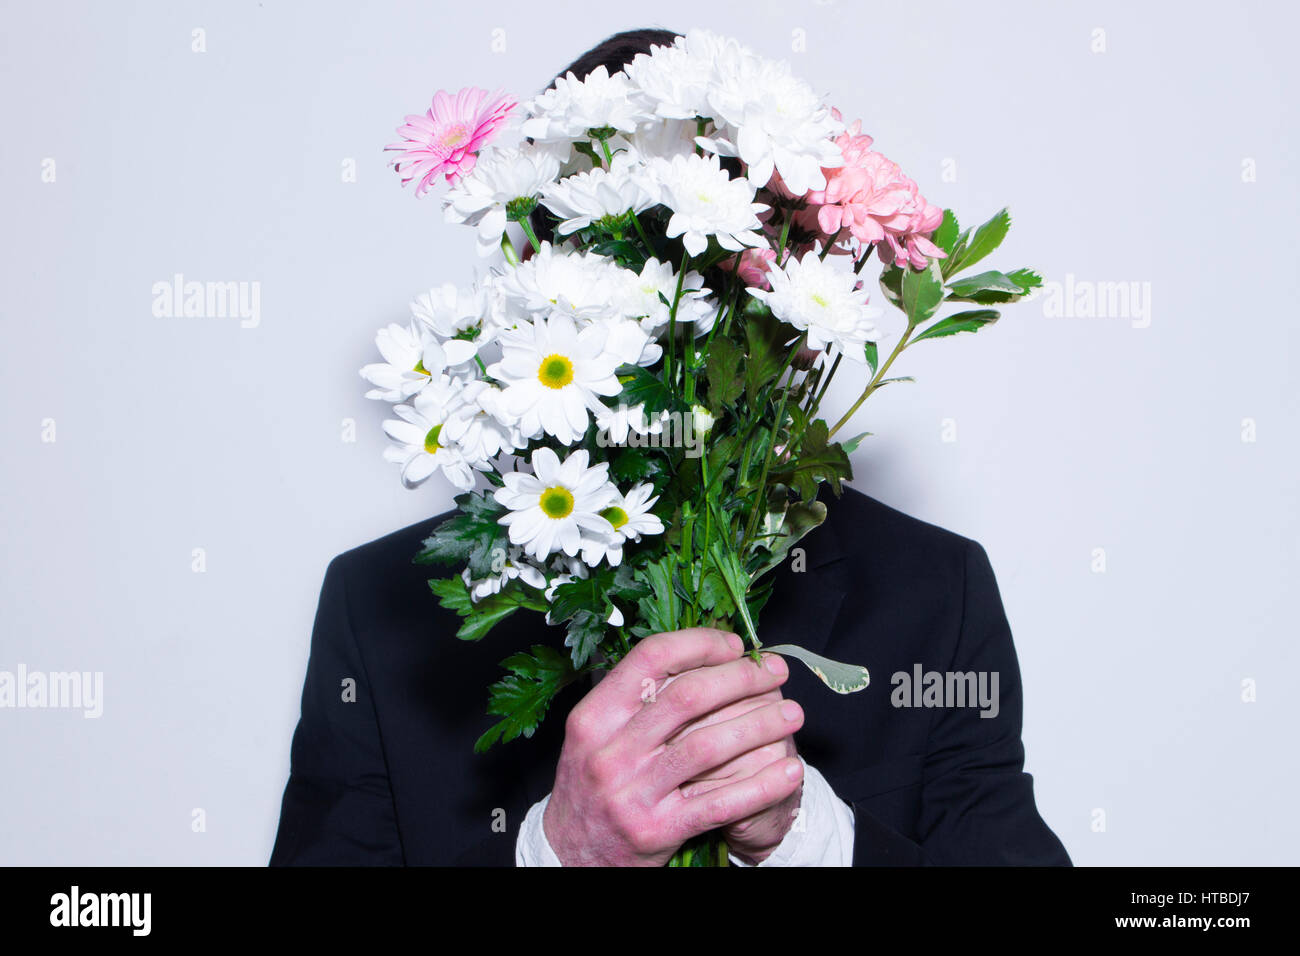 A man hiding his face with flowers stock photo 135476495 alamy a man hiding his face with flowers izmirmasajfo Image collections